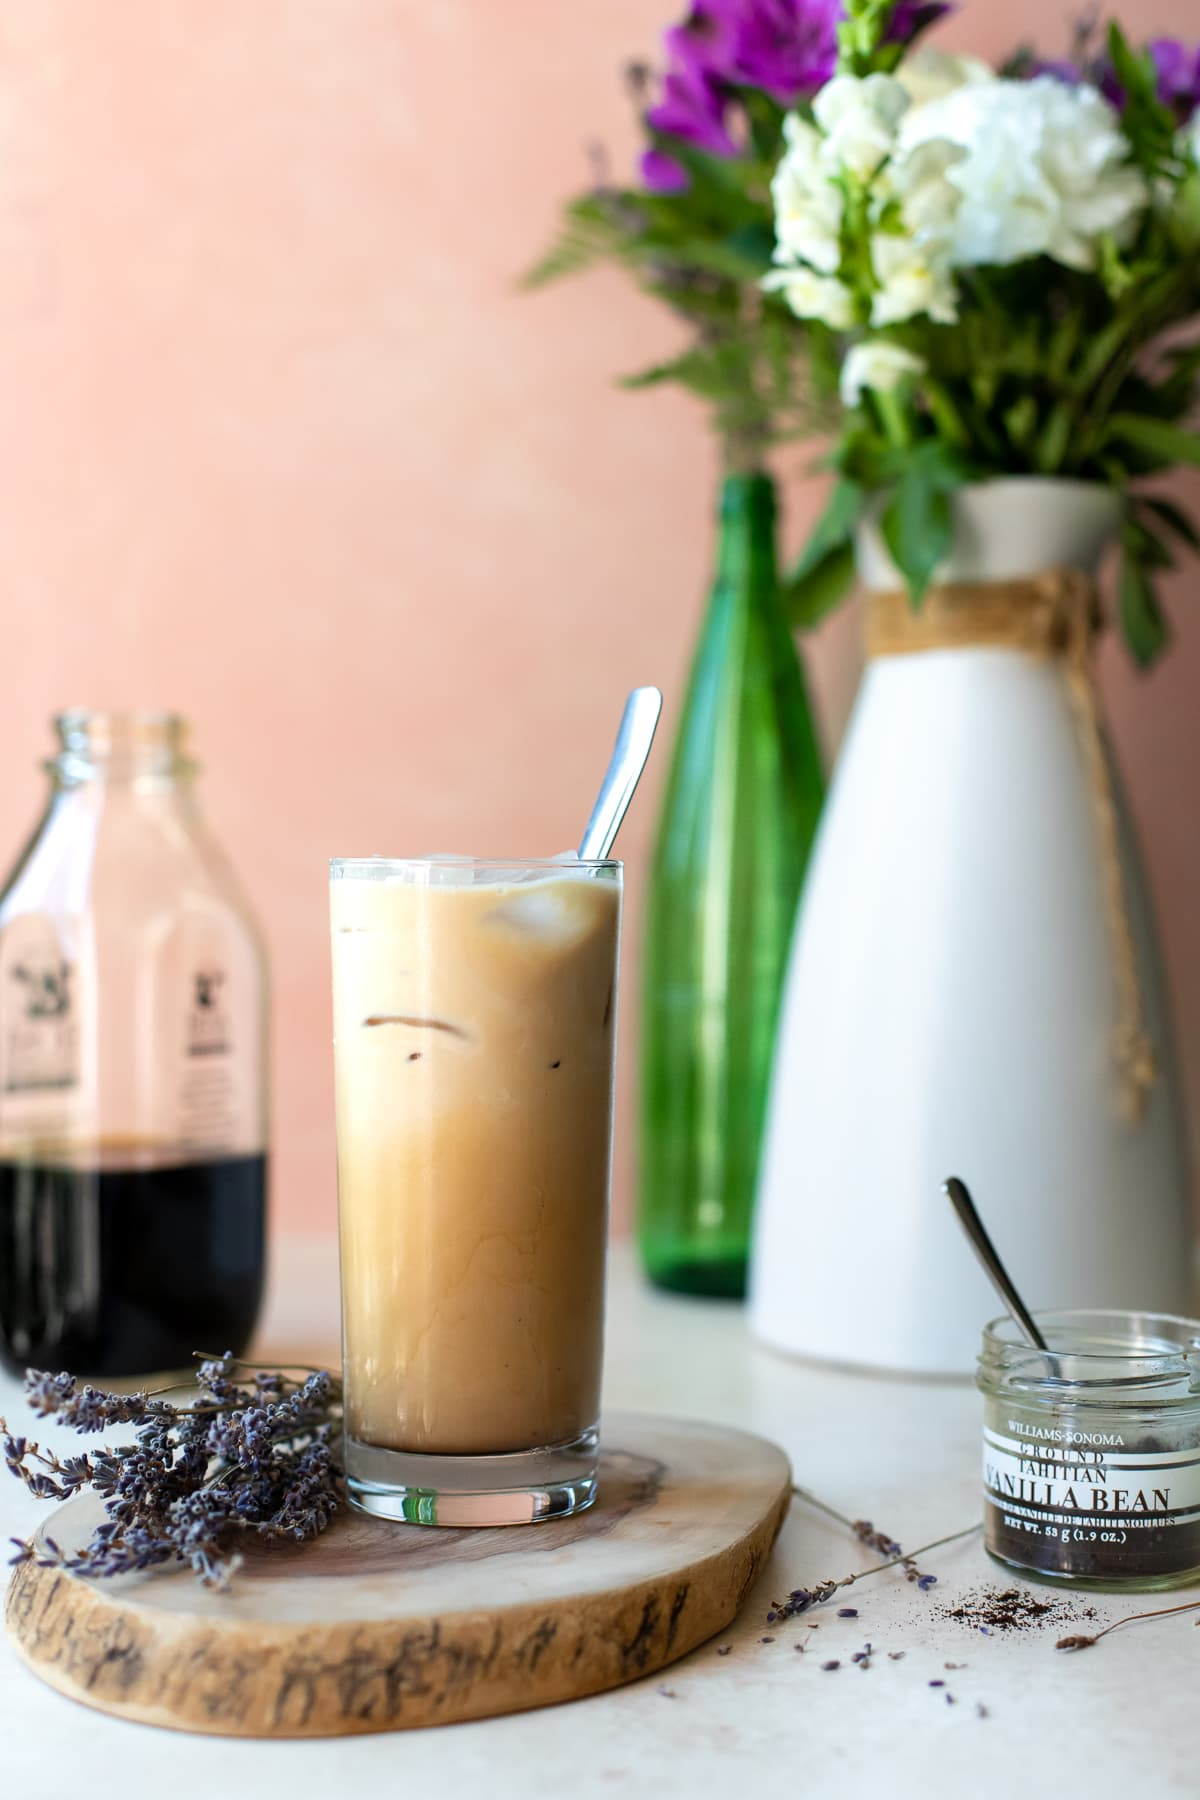 Coffee on a wooden serving board with lavender, vanilla bean, and fresh flowers in the background.